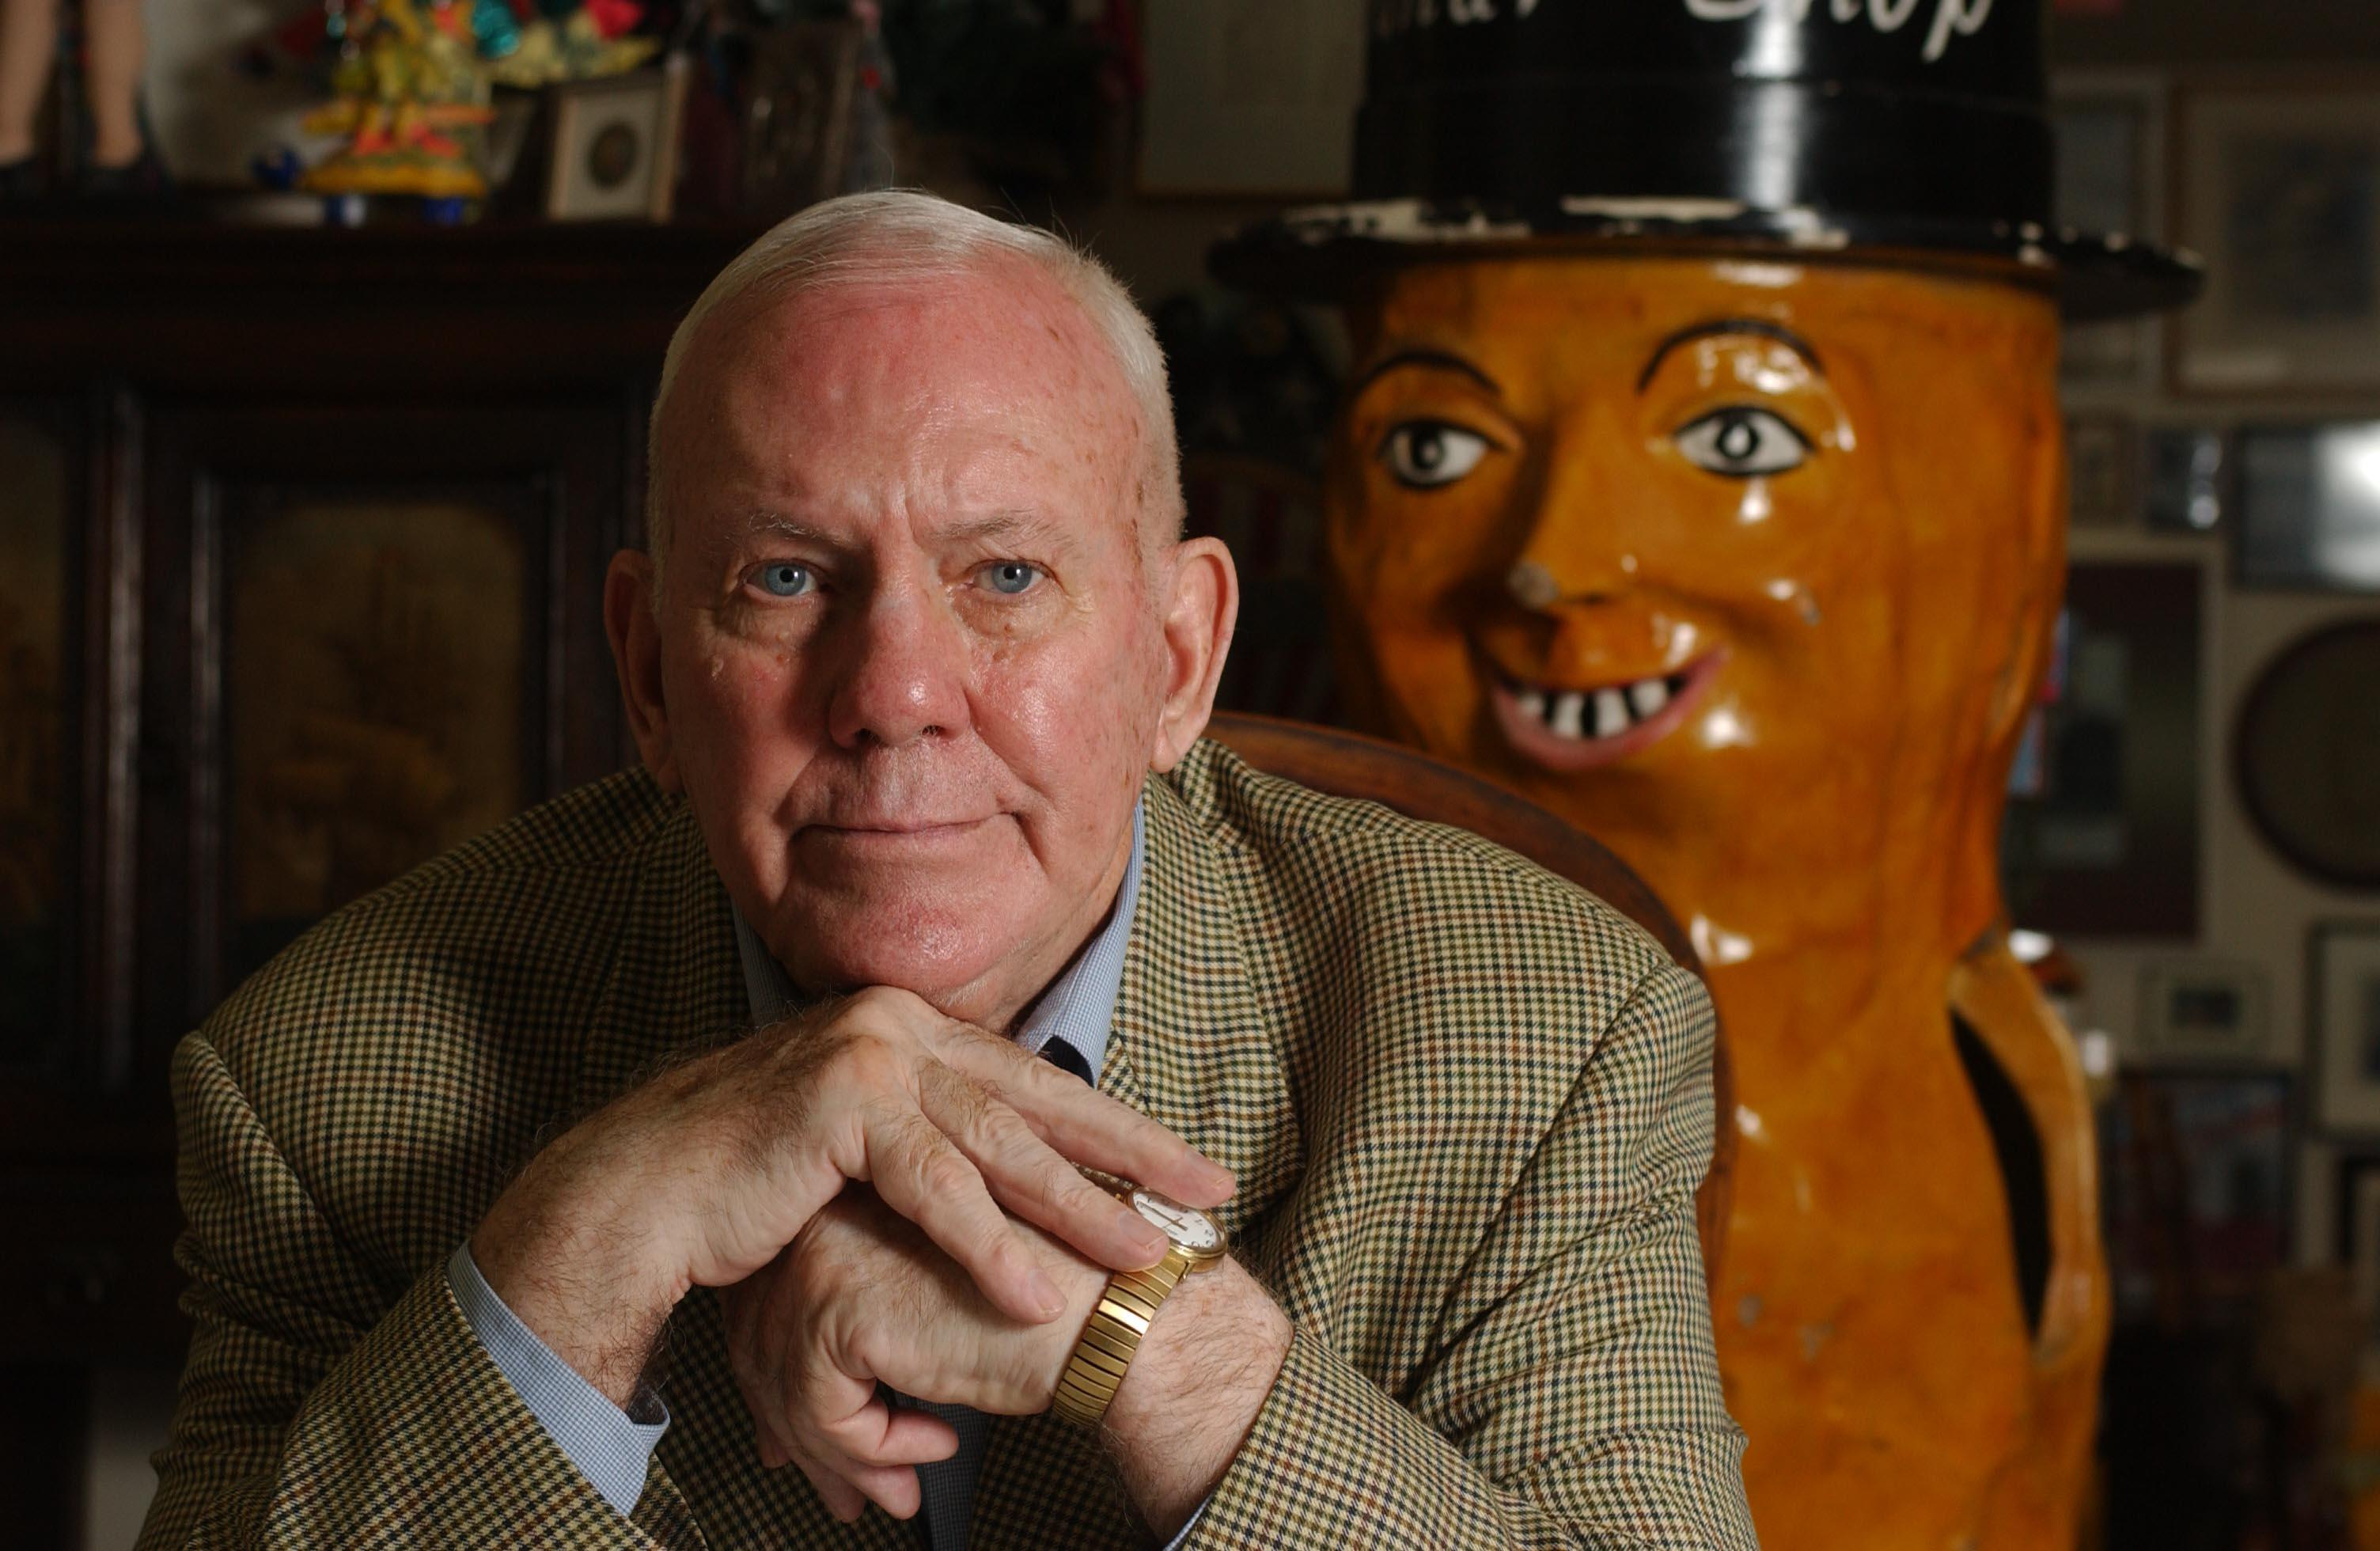 Charles Rand Penney thought Mickey Mouse and Ronald McDonald got plenty of attention, while another American icon, Mr. Peanut, could use more - so he started collecting related memorabilia. (Bill Wippert/Buffalo News file photo)